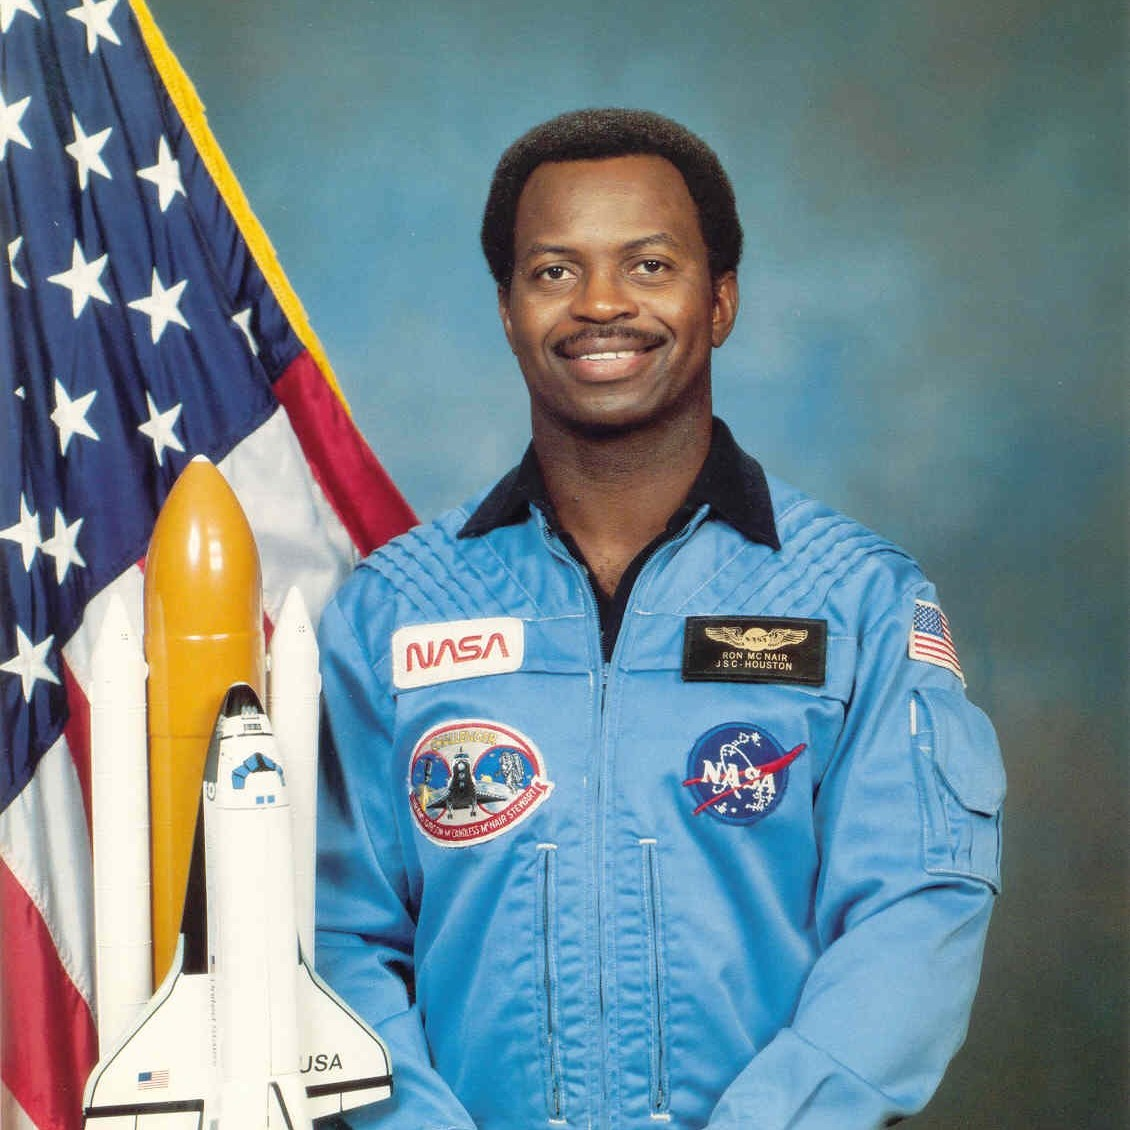 Ronald E. McNair in NASA flight suit standing with a USA flag and model of the space shuttle.